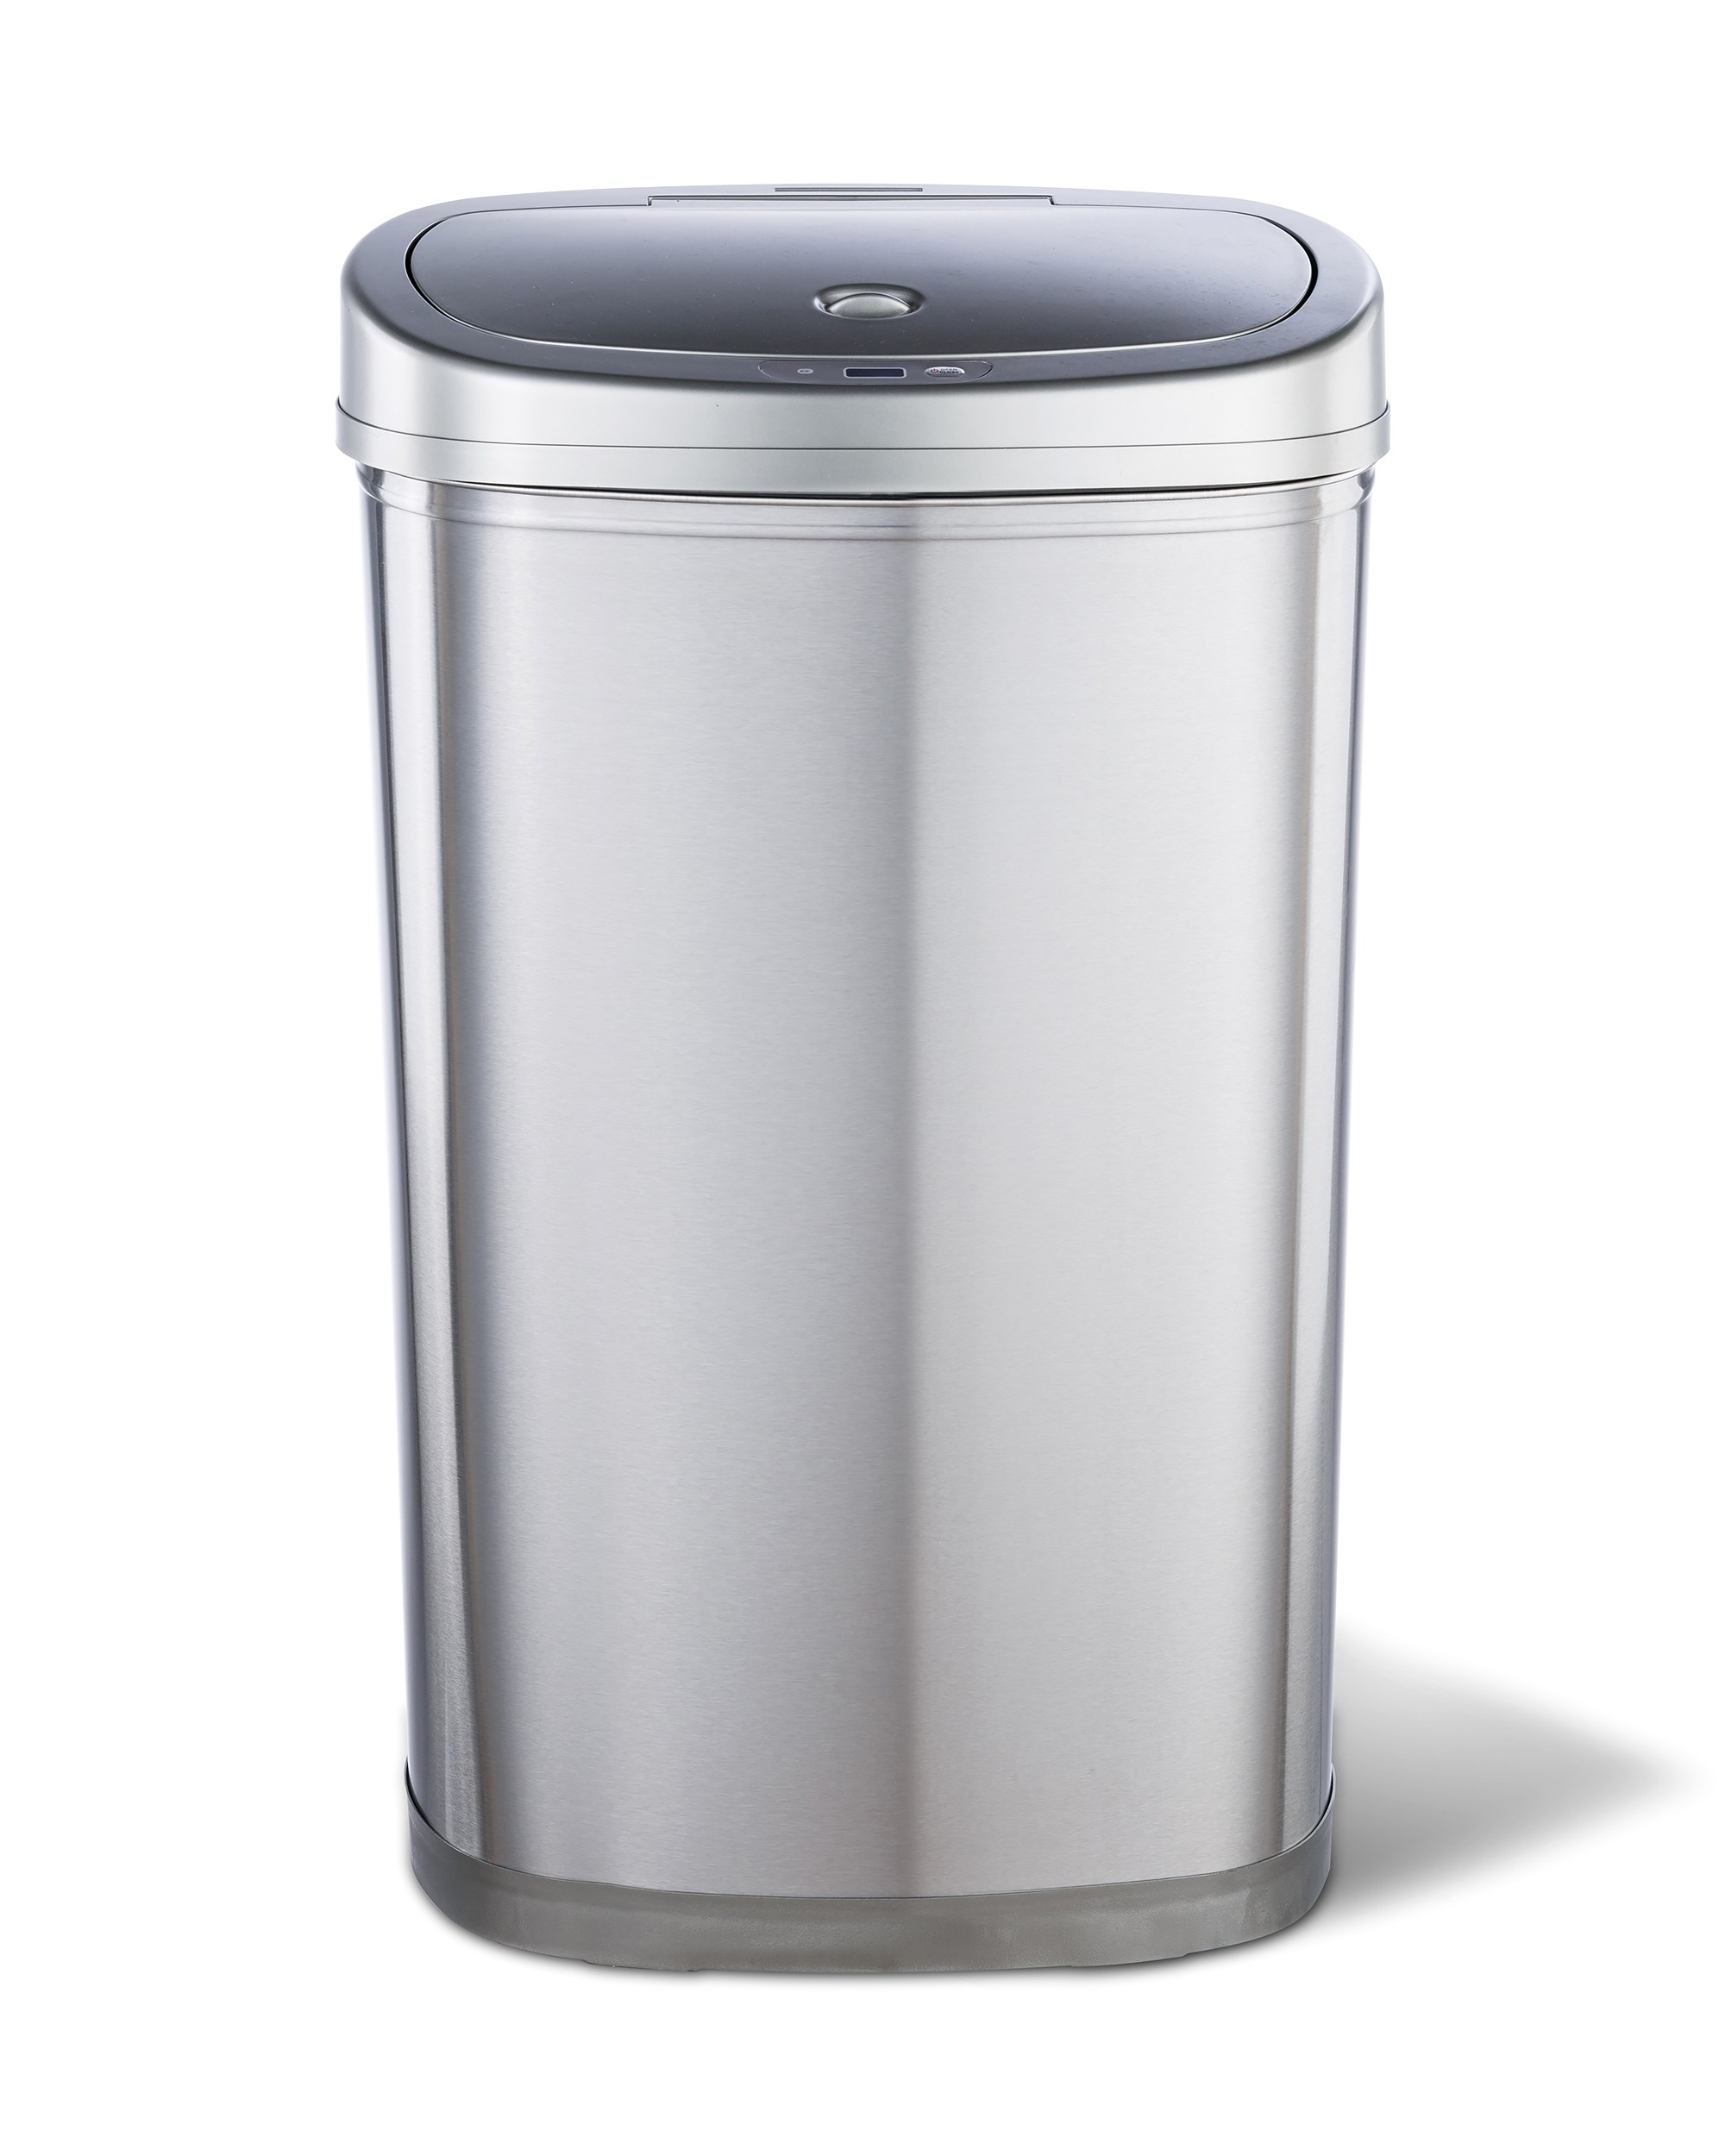 Recycling, 50L Smart Autobin, S/Steel automatic waste bin for kitchen & home office